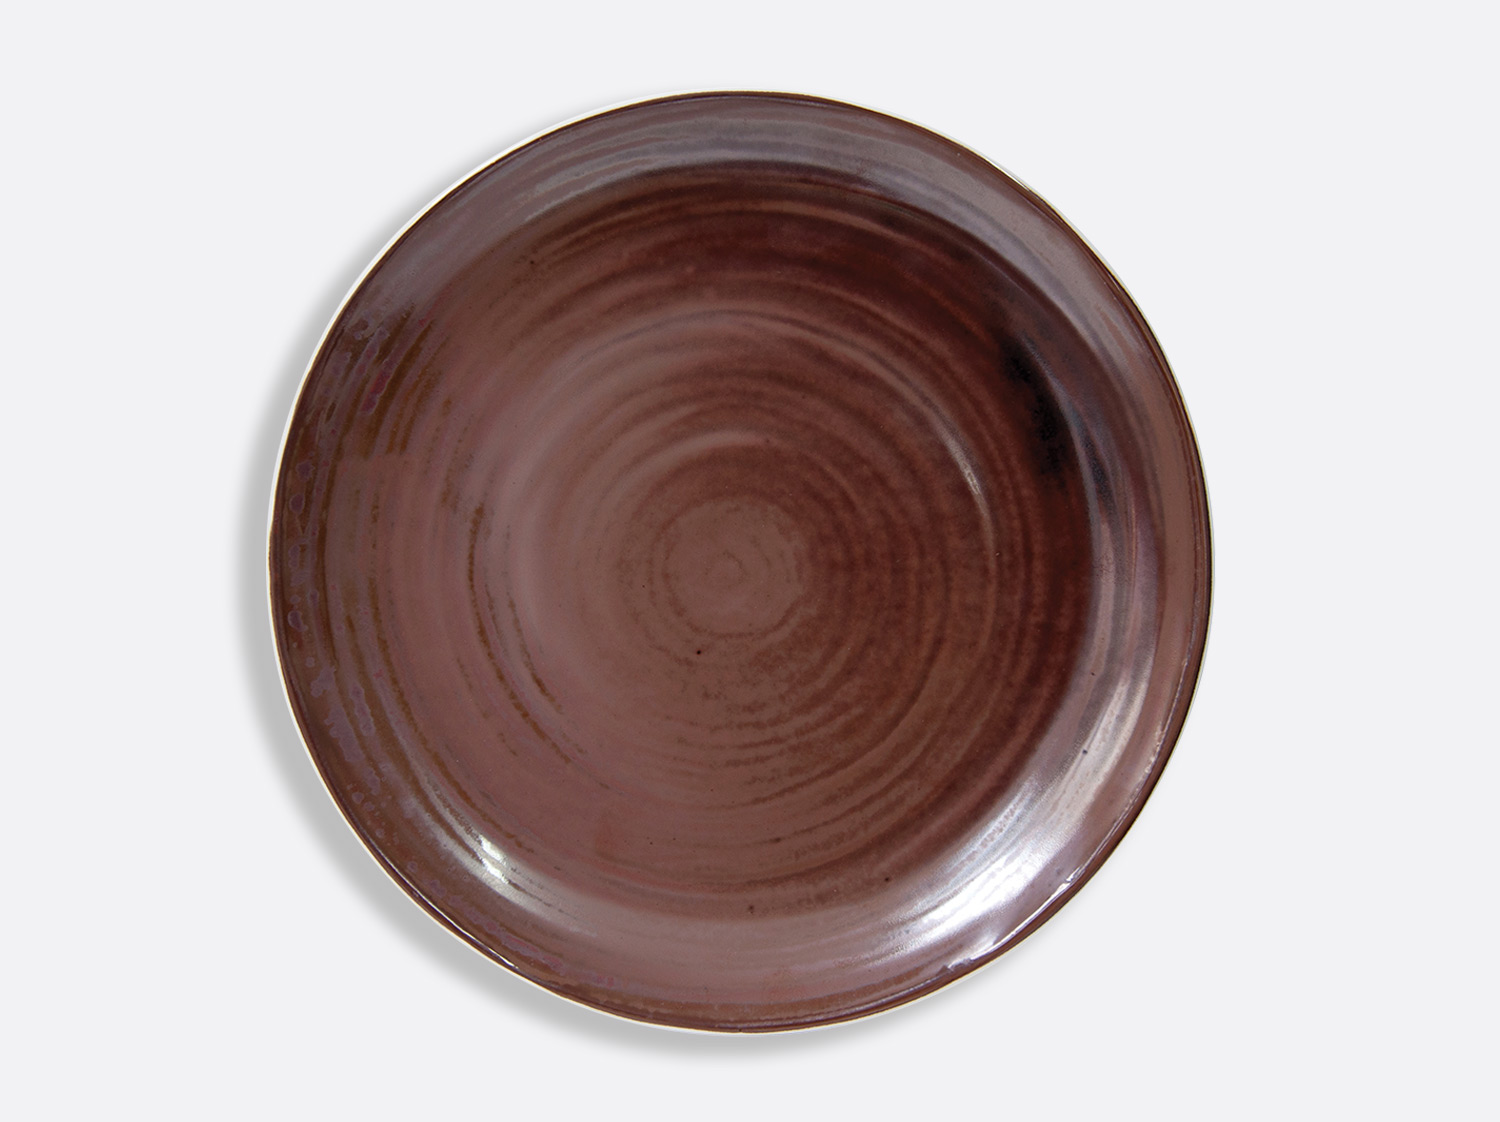 China Celsius Castanon plate 31 cm of the collection Castanon | Bernardaud